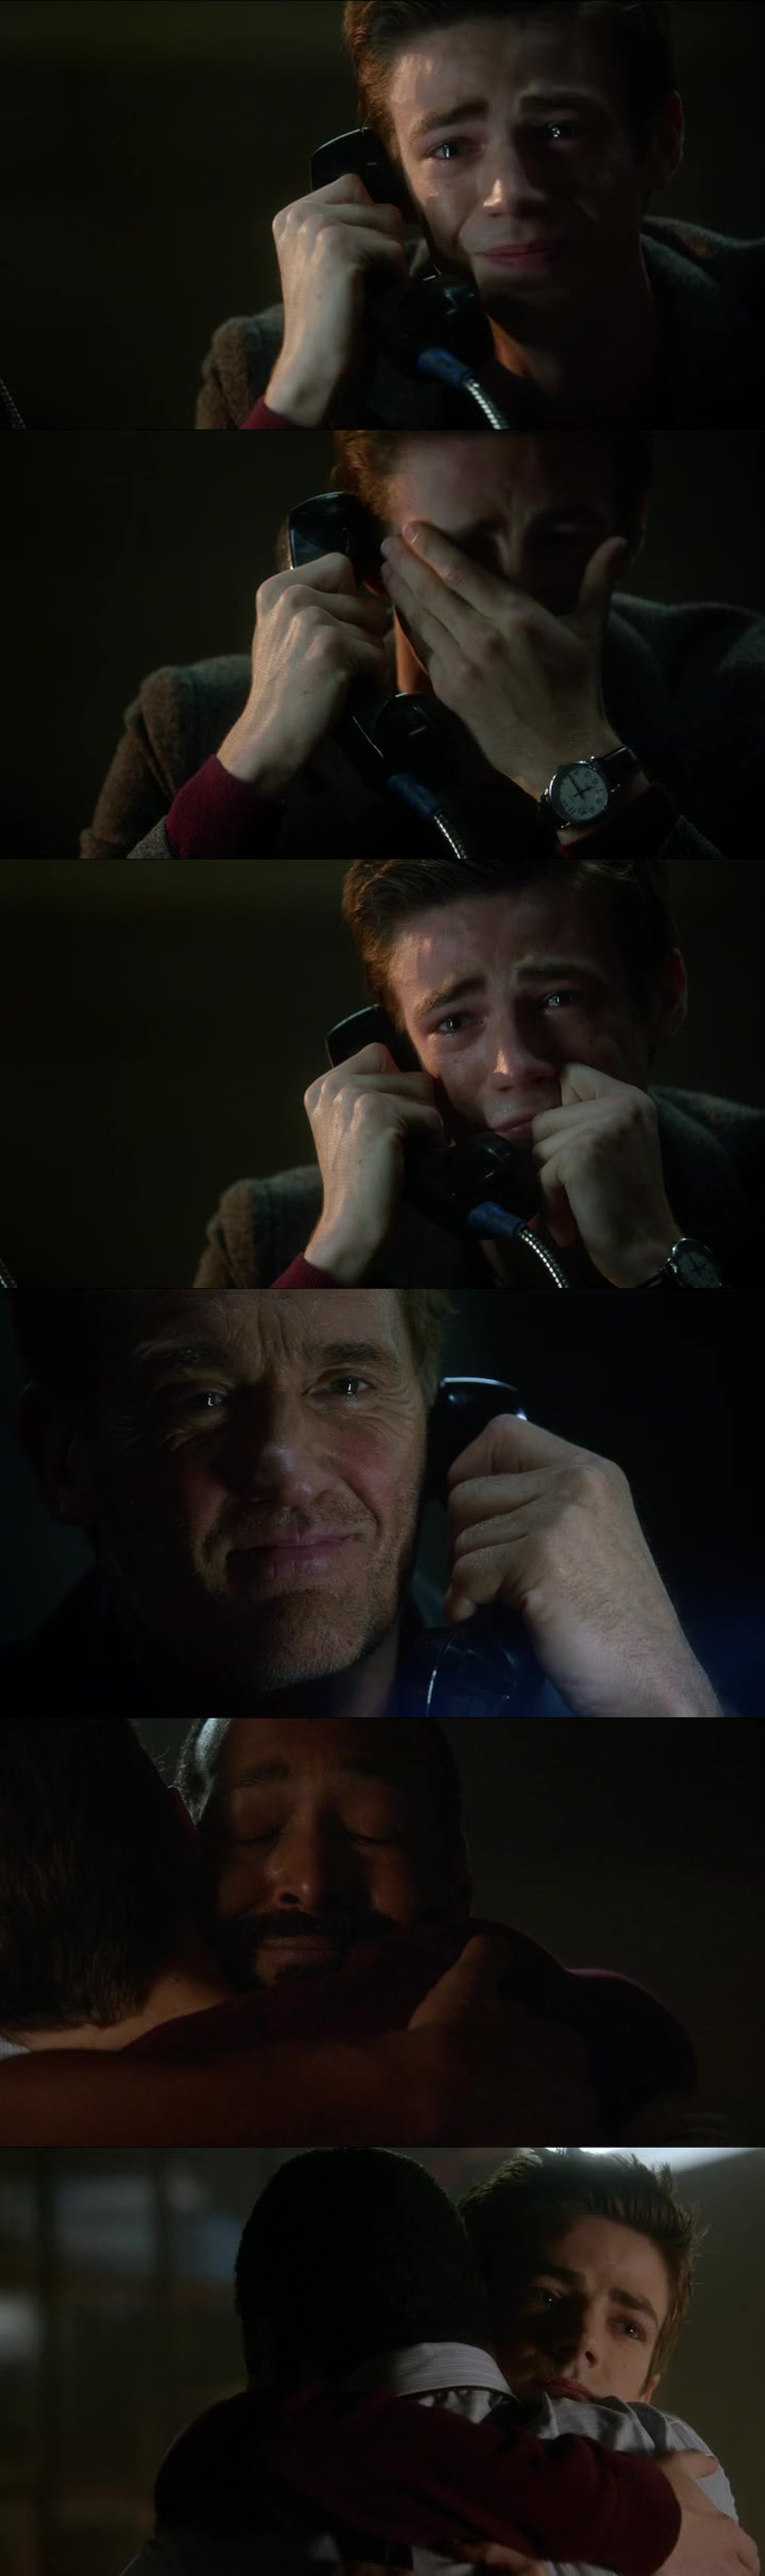 you always cry when they're together...  :'(